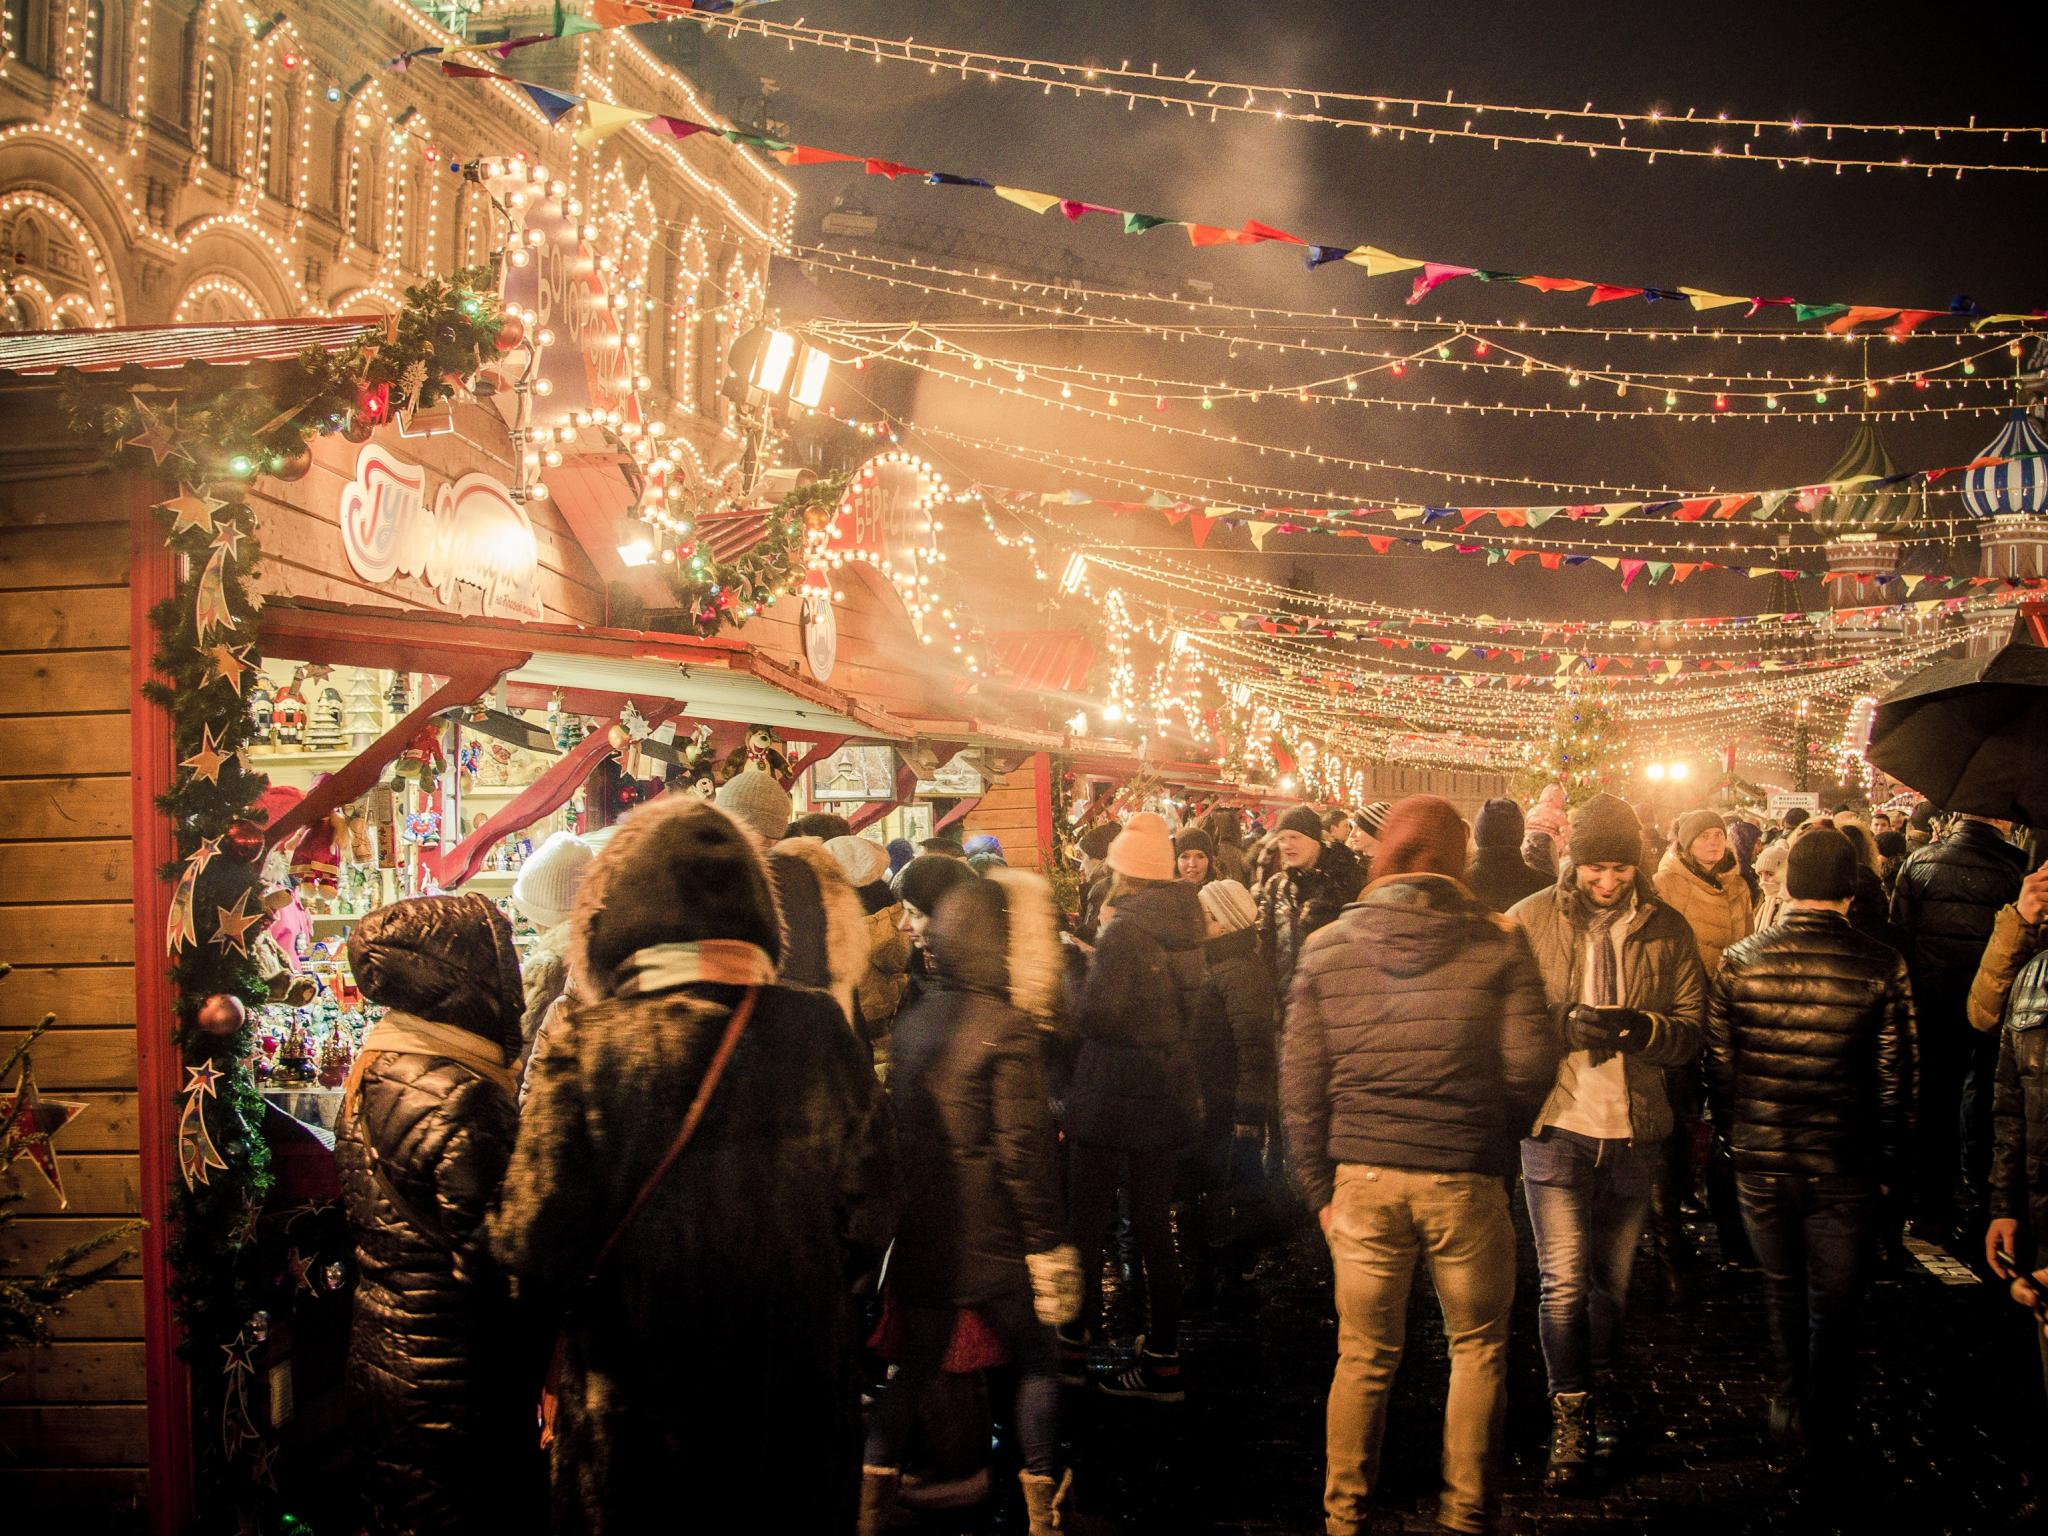 Christmas In Europe Wallpaper.The 14 Best Christmas Markets In Europe To Visit This Winter